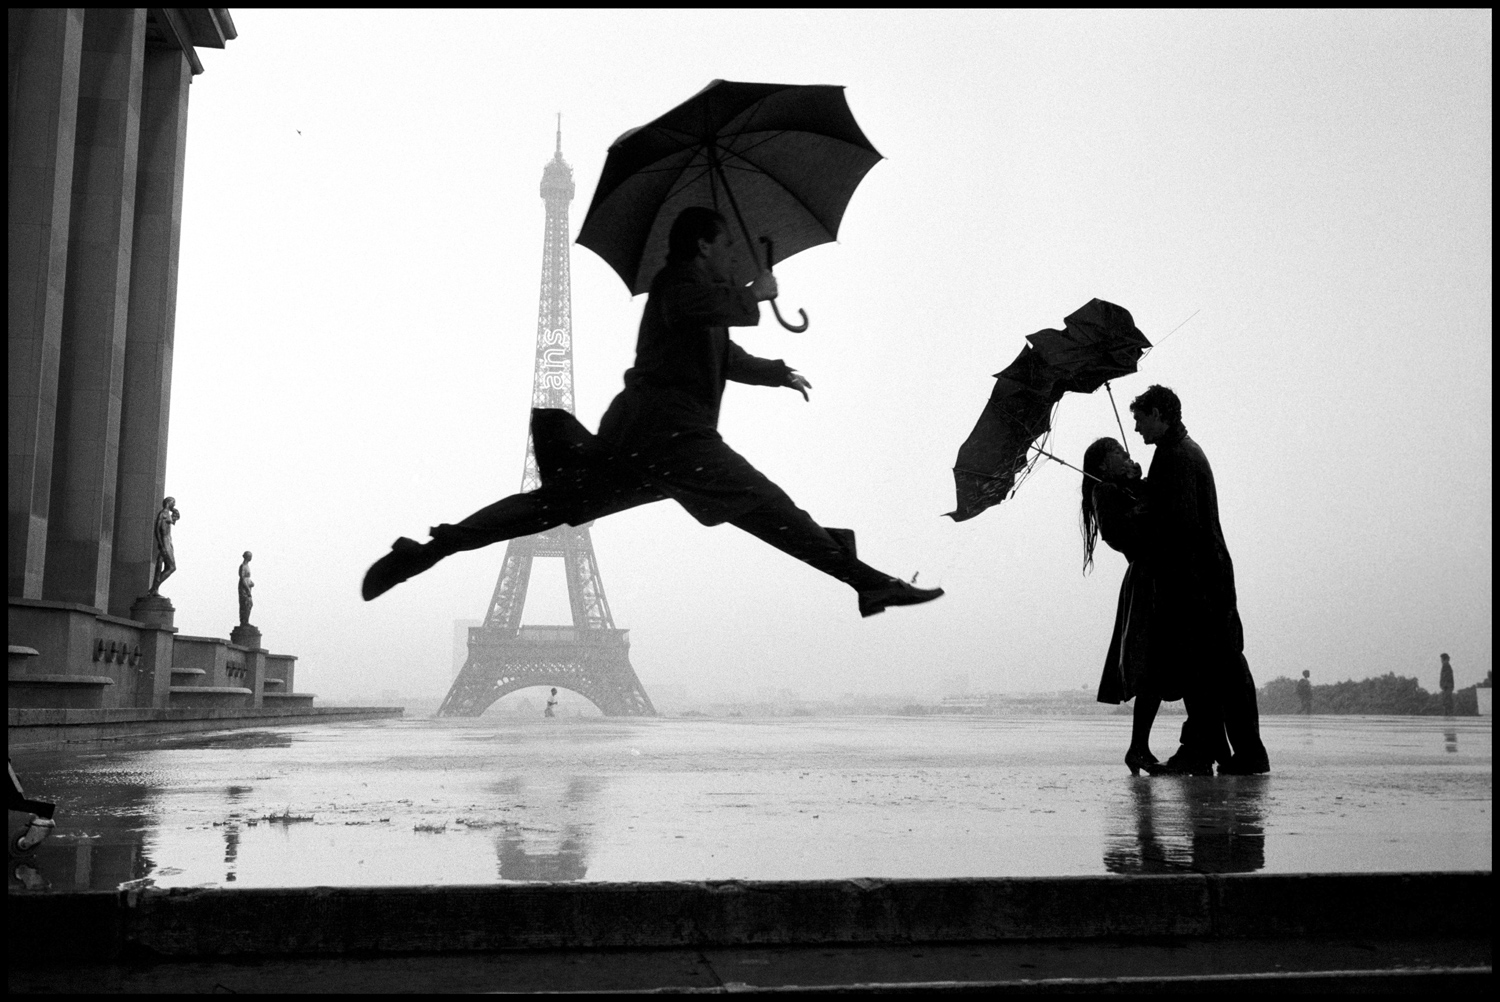 """This is turning out to be one of my better pictures.  It's a guy with an umberella jumping with the Eiffel Tower in the background. It's the cover of my recently published ""Paris"" book. This picture was taken about 15 years ago. I don't remember whether we had a rainstorm or if we created it. Was it for the Board of Tourism? Actually, you'd never have rain for [the Board of Tourism] unless it was in a rainforest."""